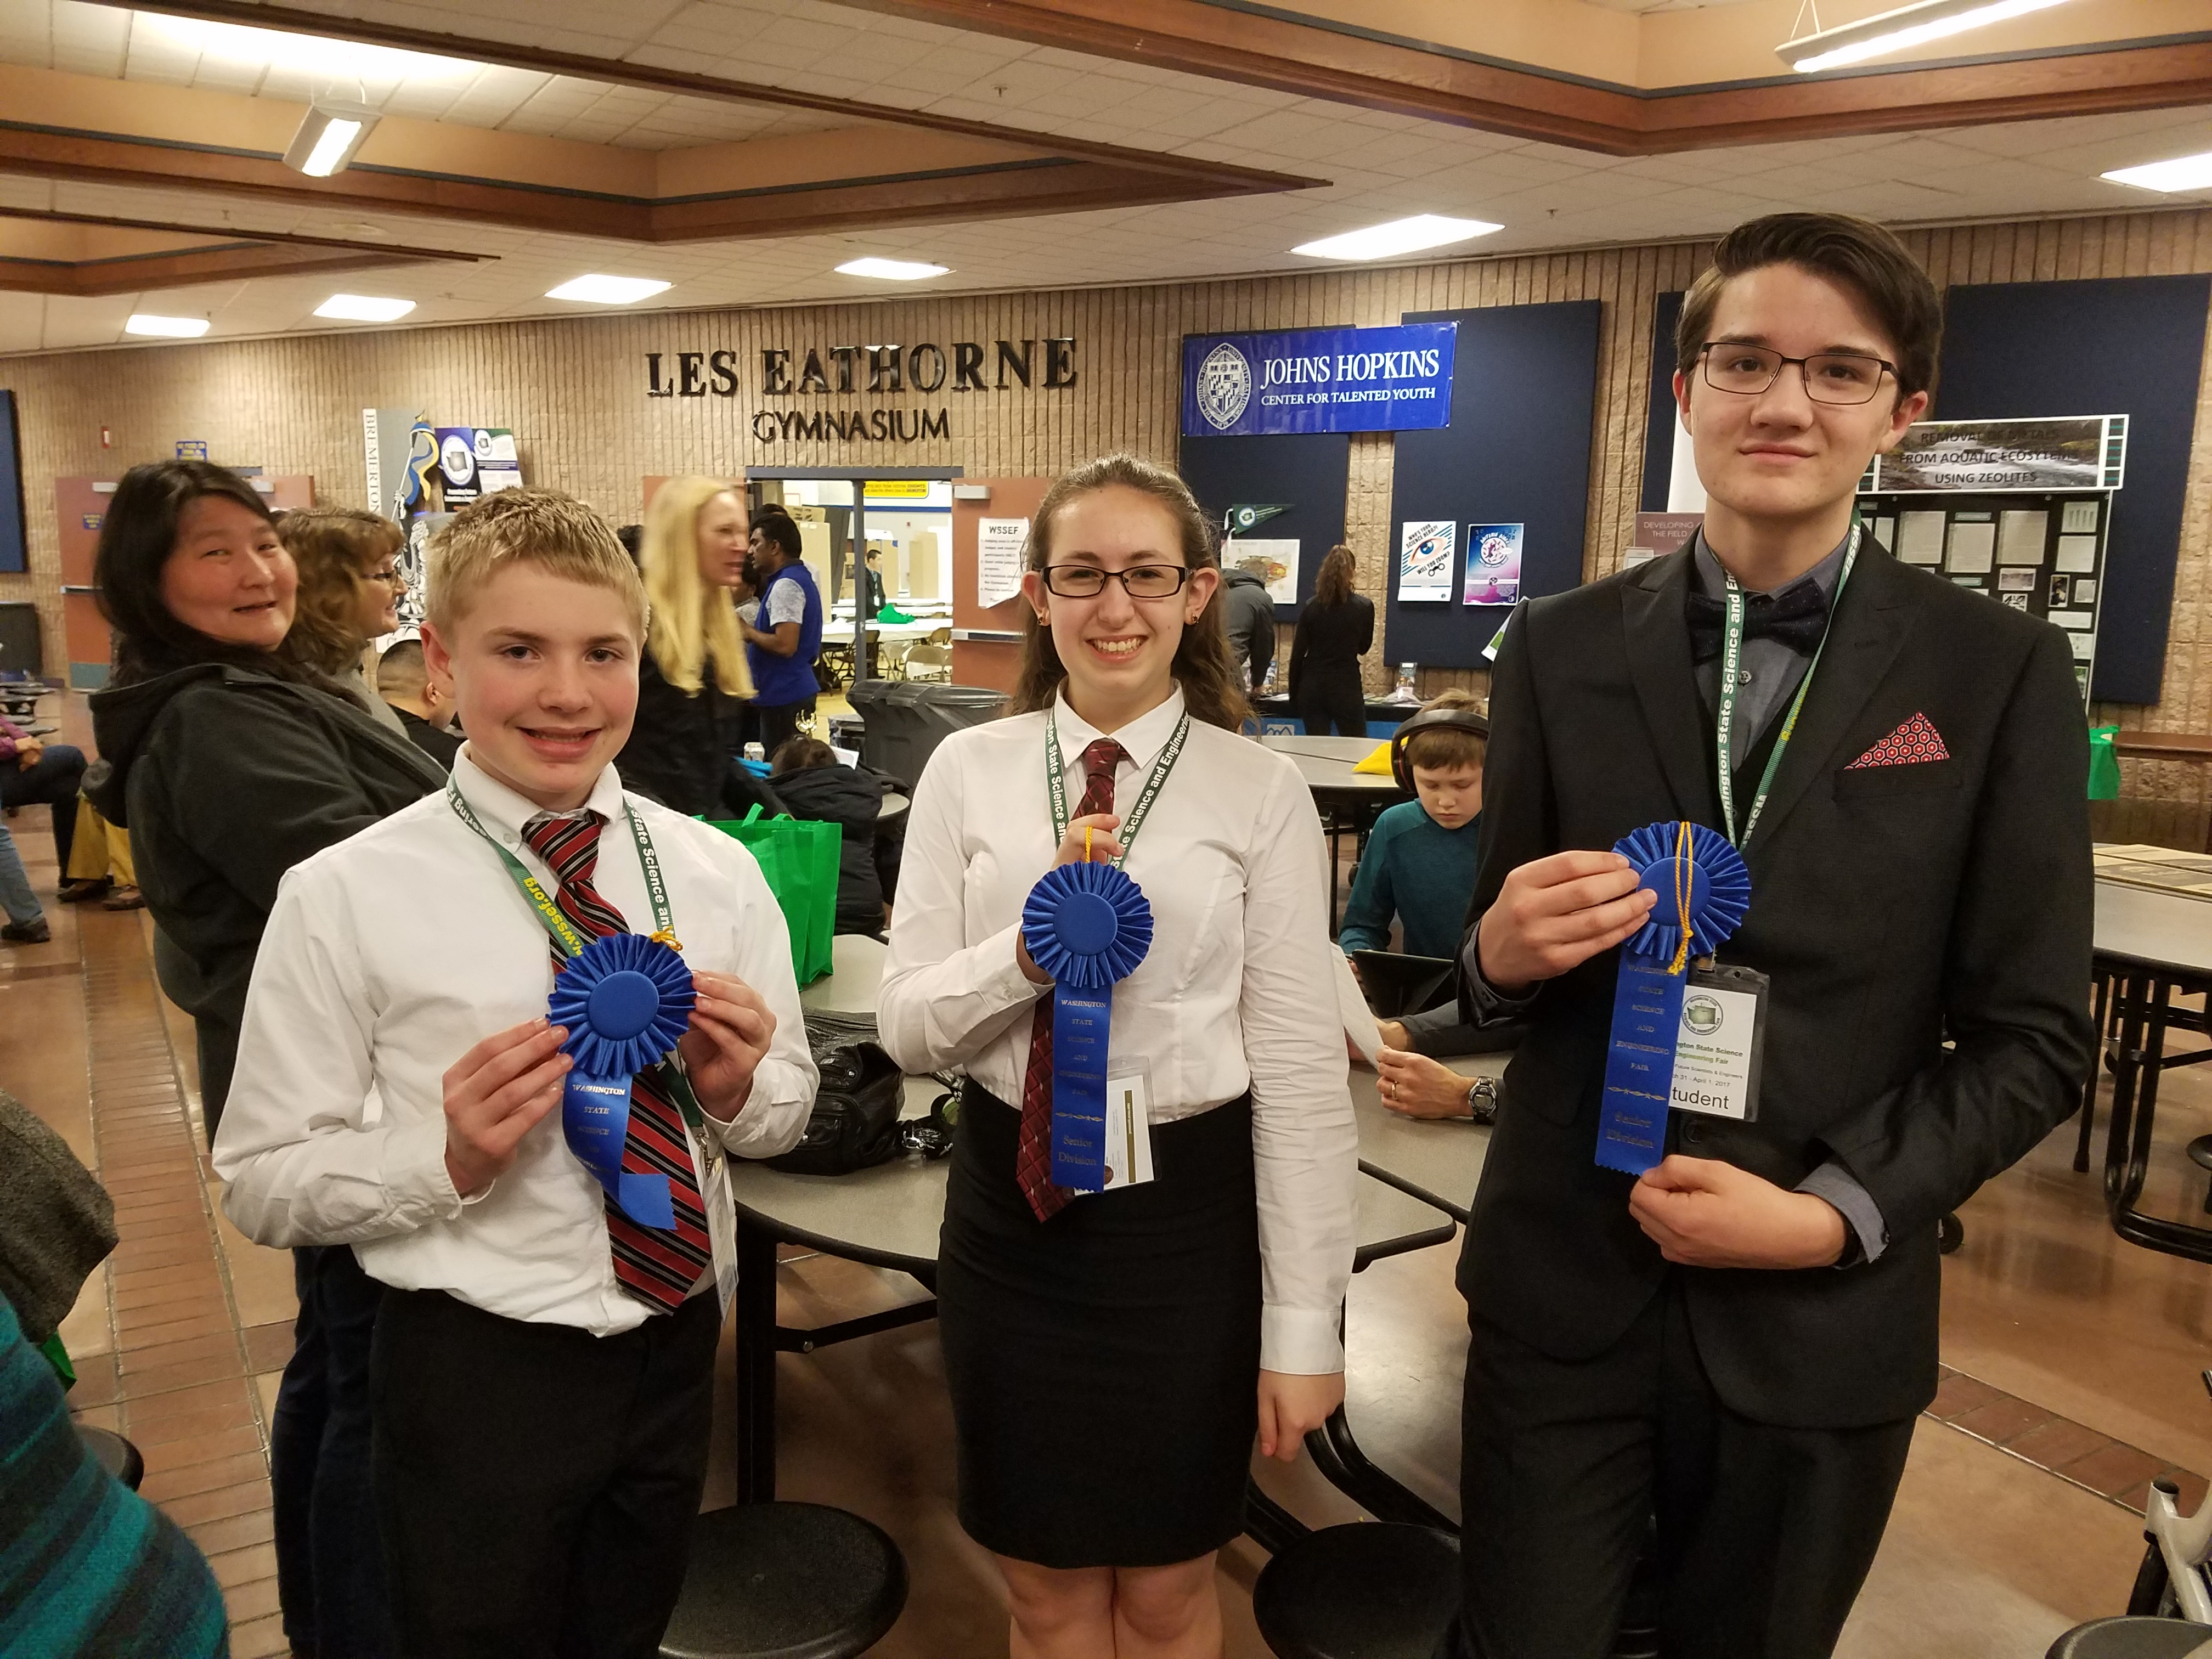 Jordan, Alexis, and Walter show off their blue ribbons.